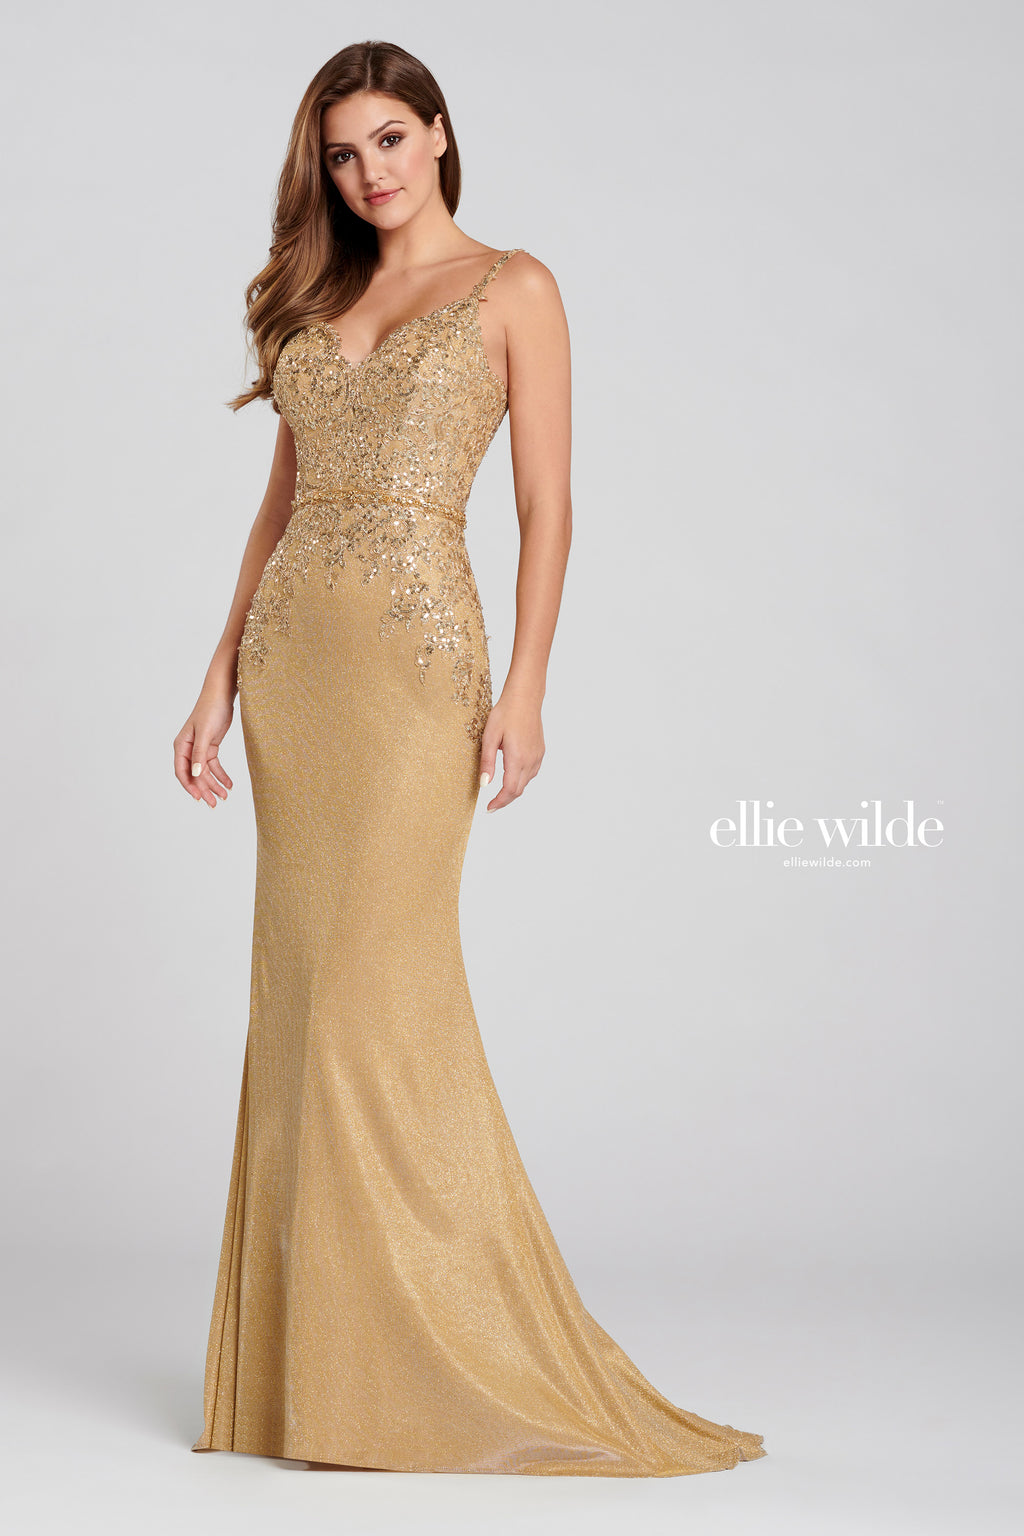 ELLIE WILDE PROM DRESS #EW120062